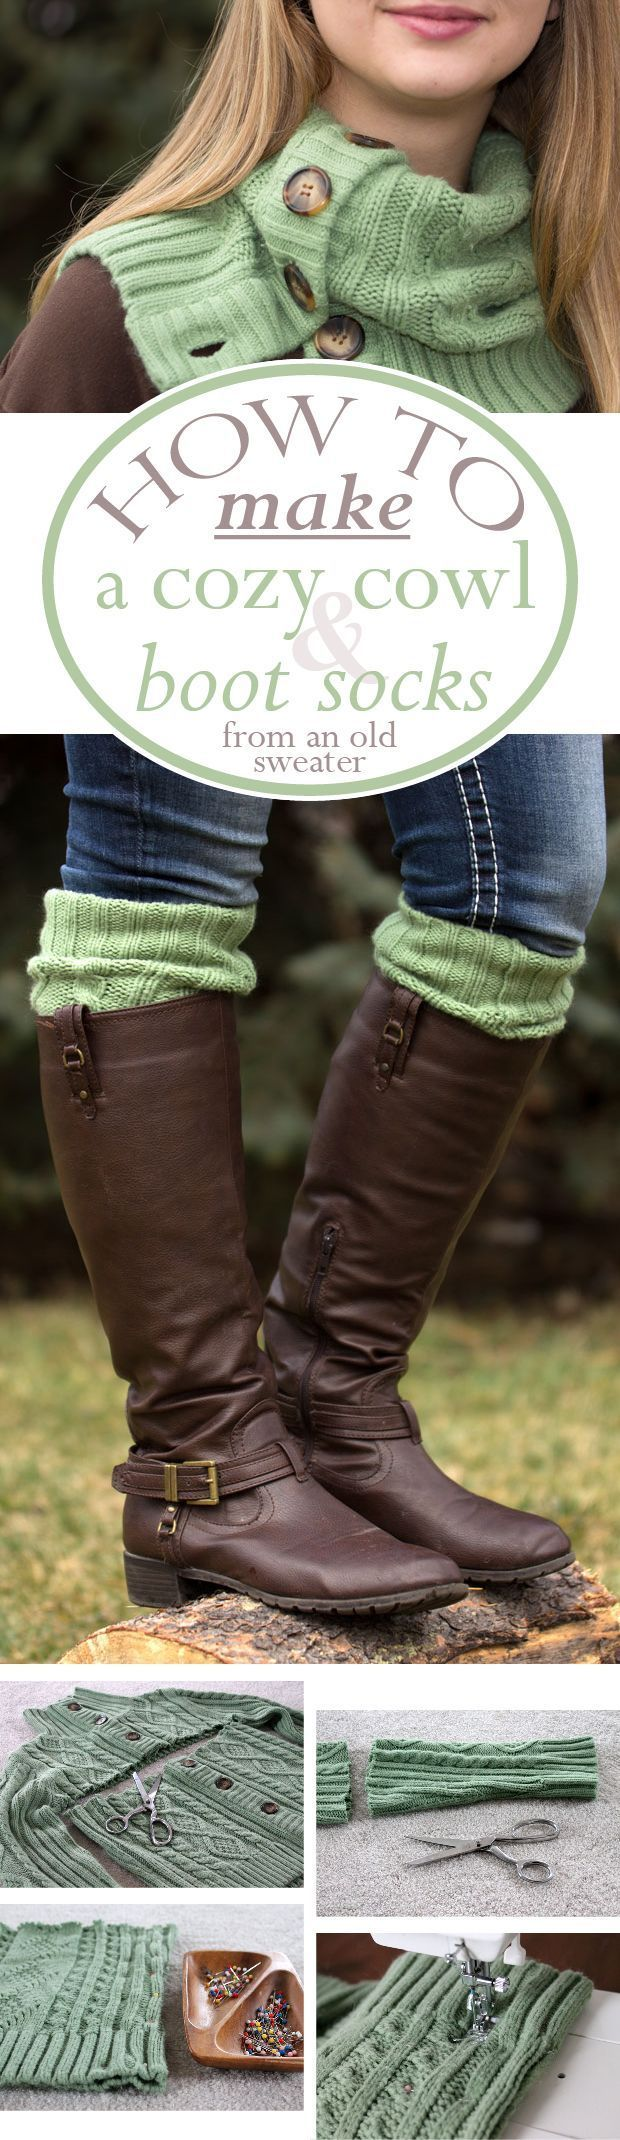 Use old, button down sweaters to make cozy cowls and boot socks! Reinventing and upcycling favorite pieces keeps them in the rotation longer: www.ehow.com/...